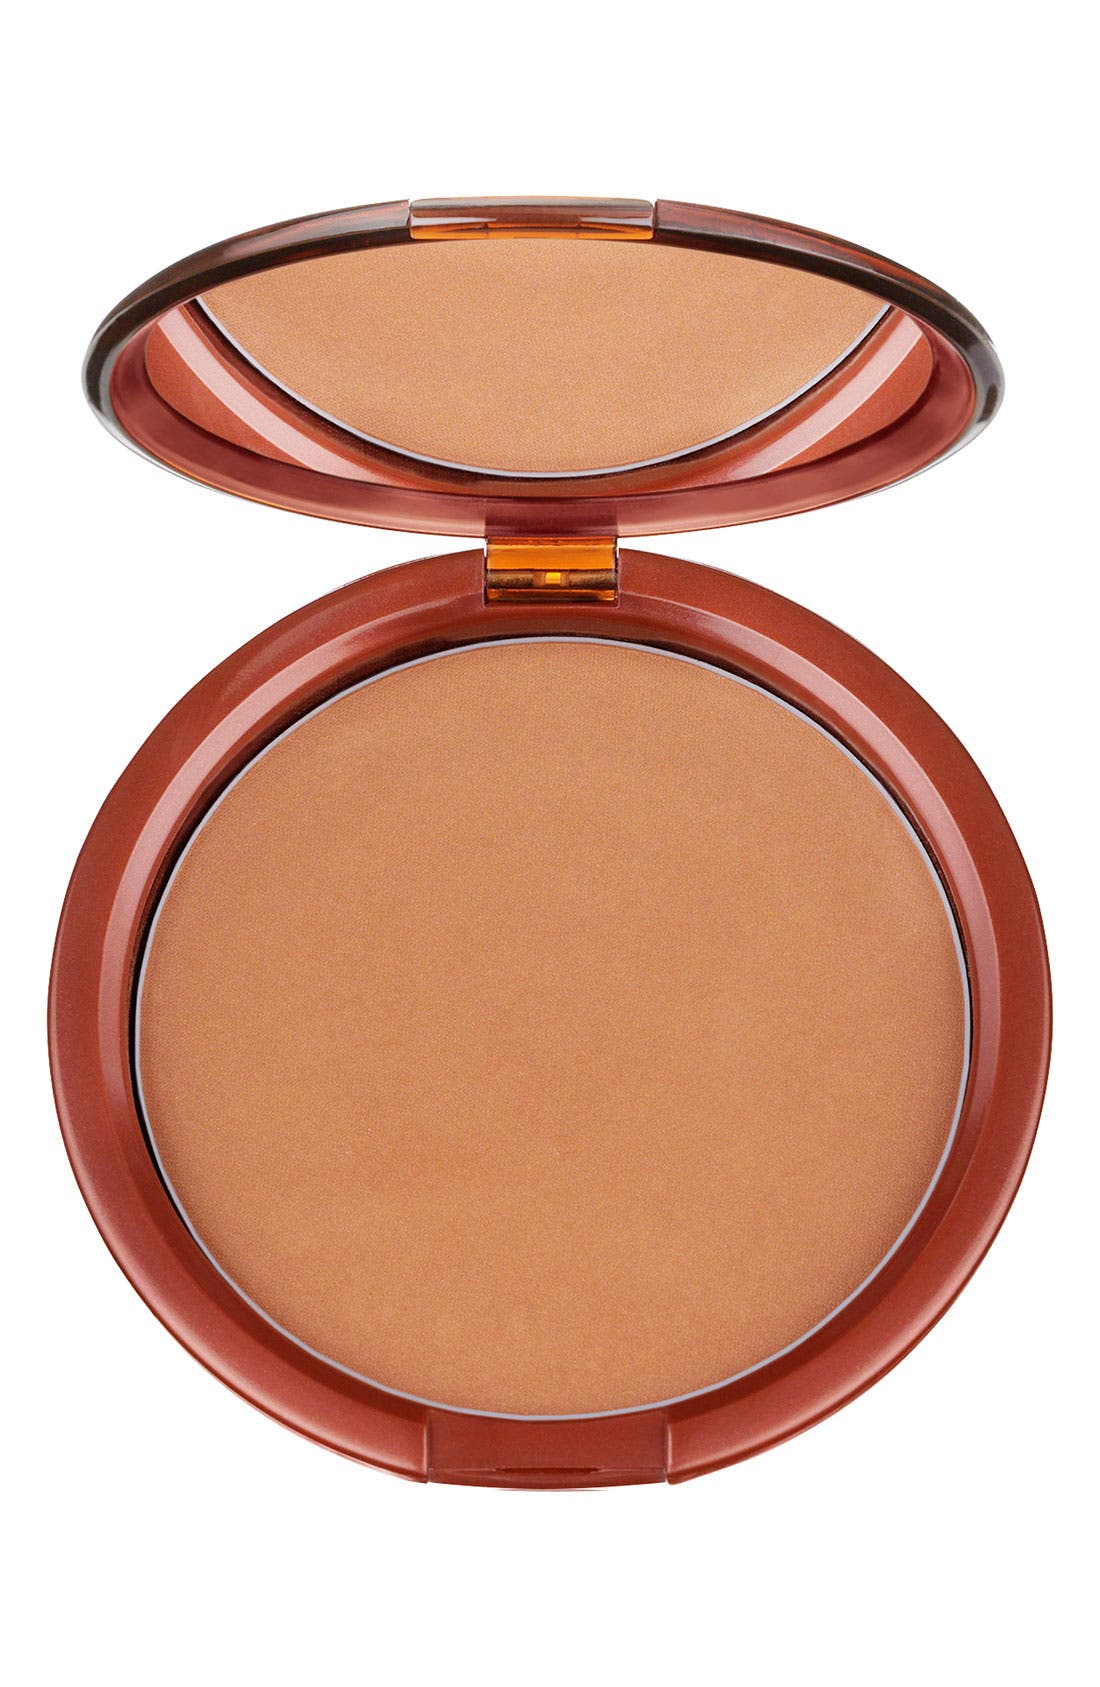 ESTÉE LAUDER, Bronze Goddess Powder, Main thumbnail 1, color, LIGHT